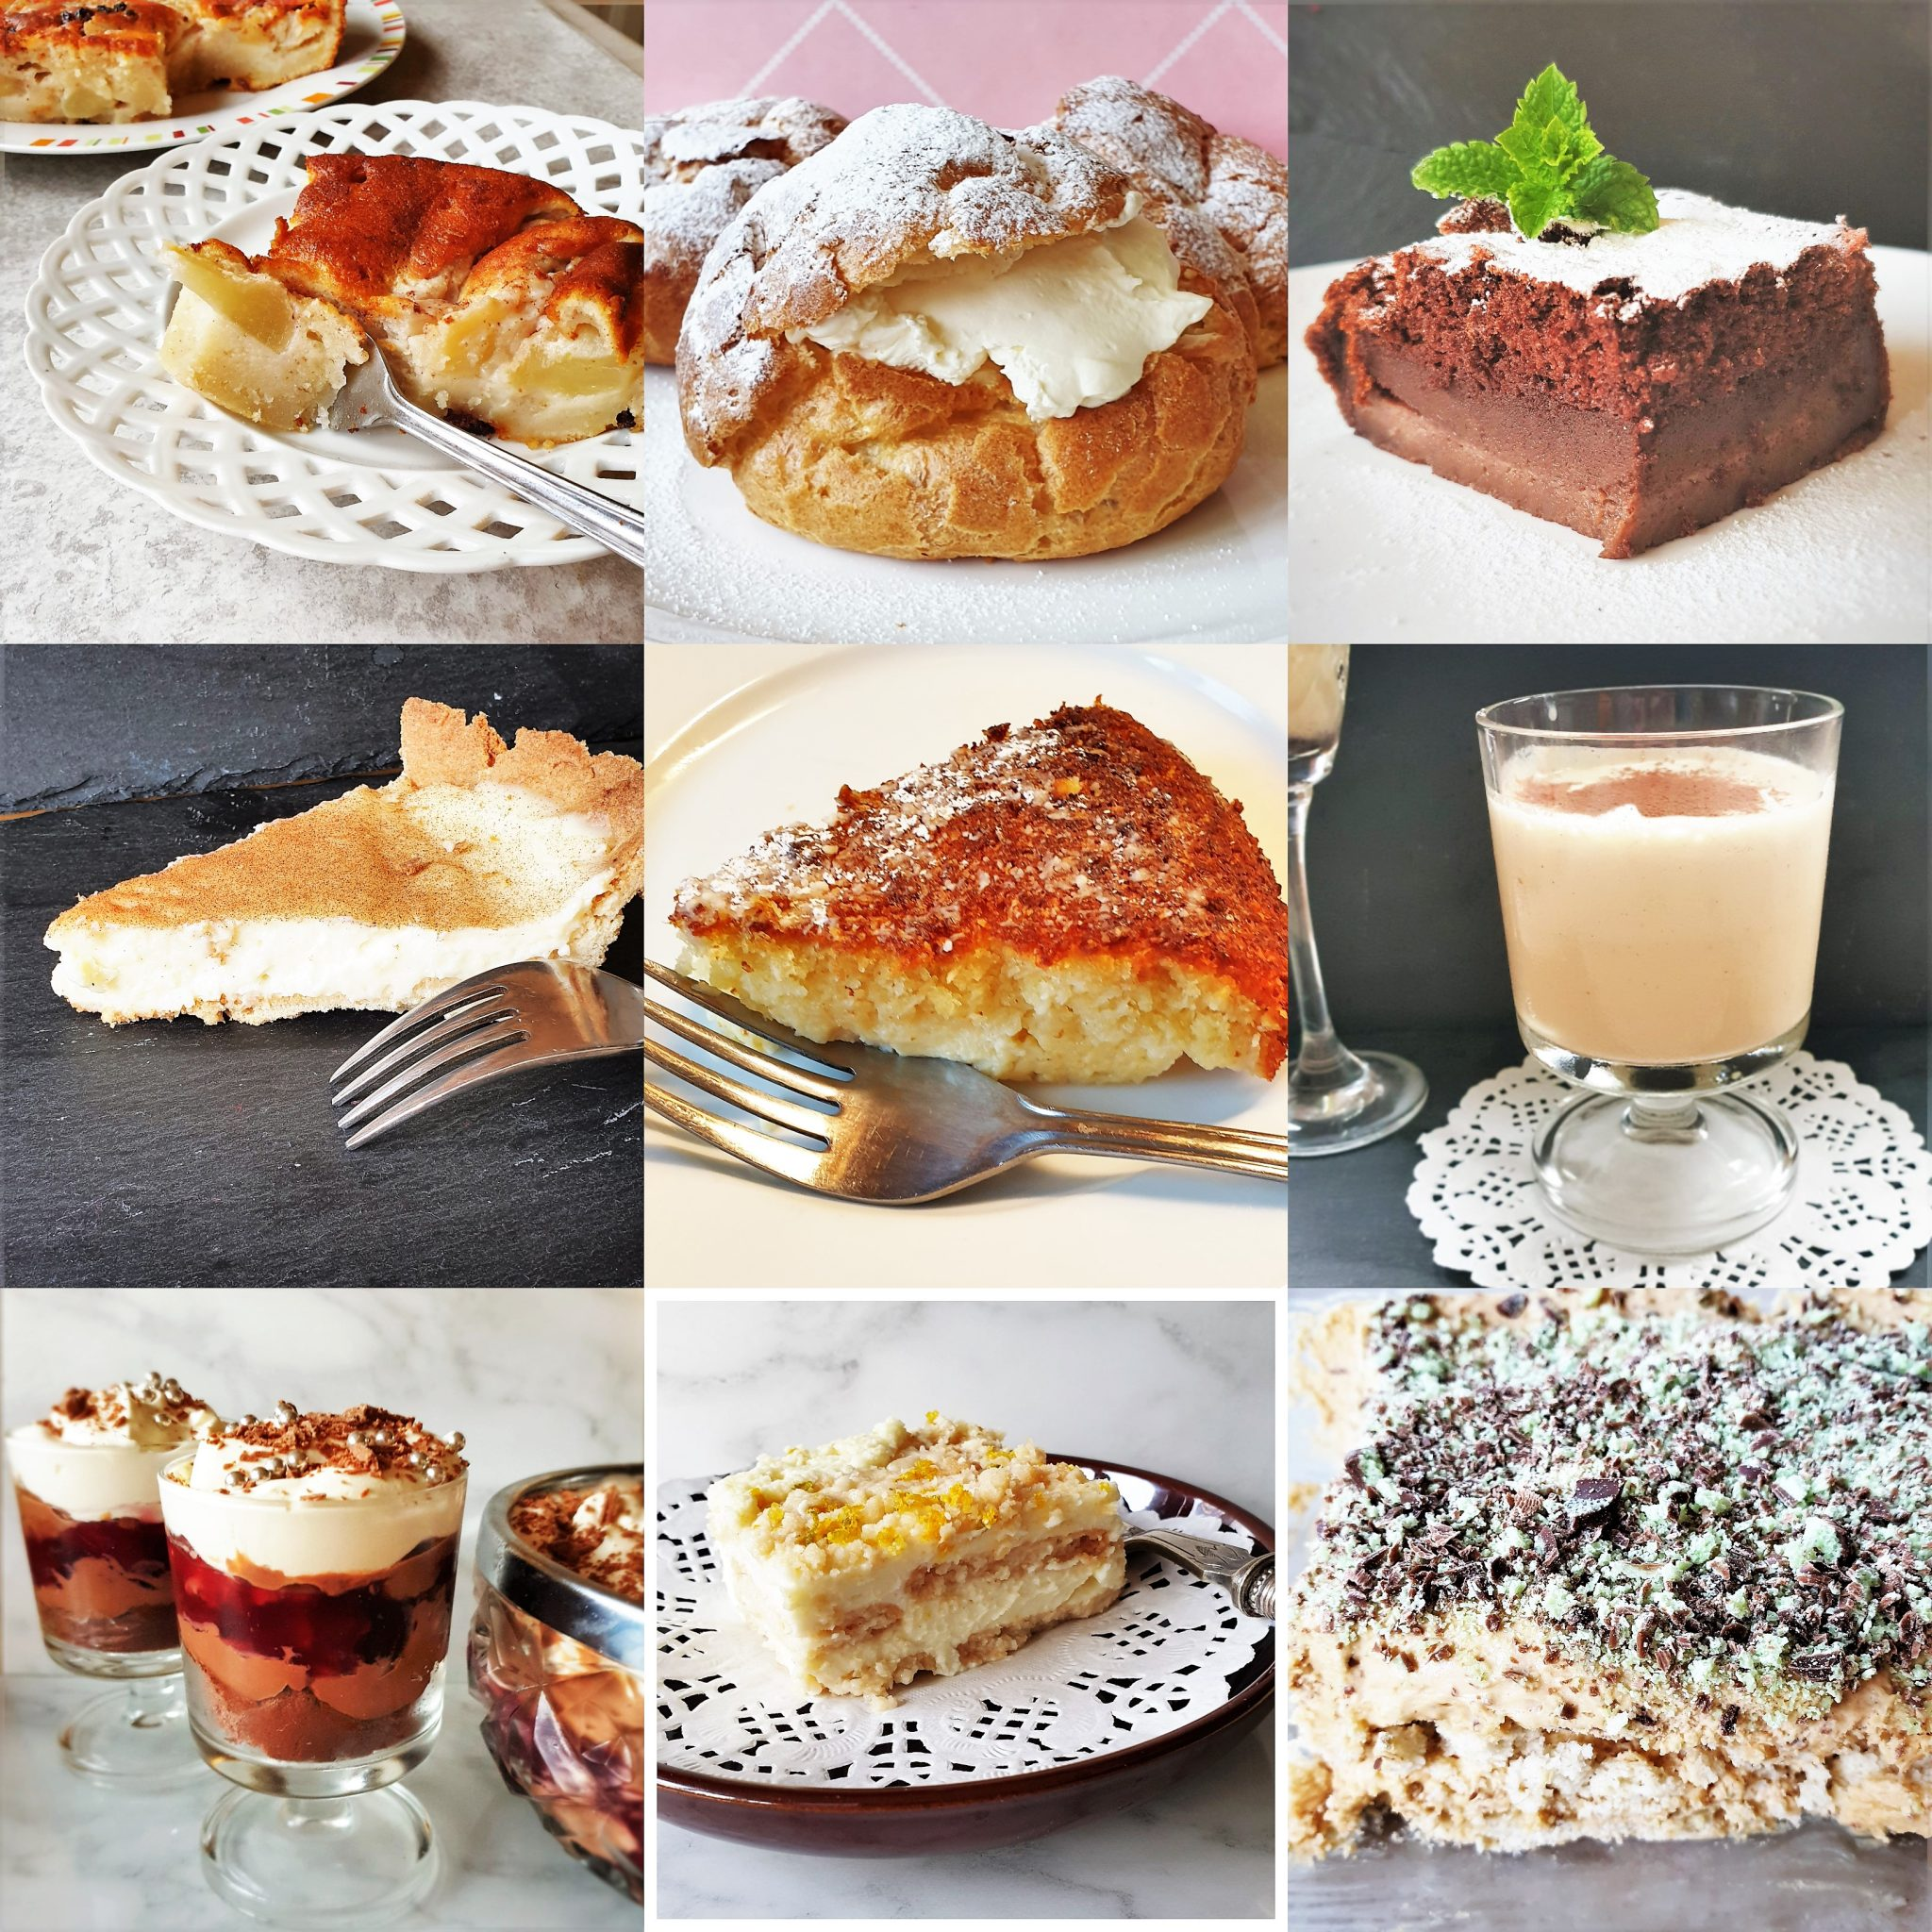 A collage of 9 dessert recipe images.